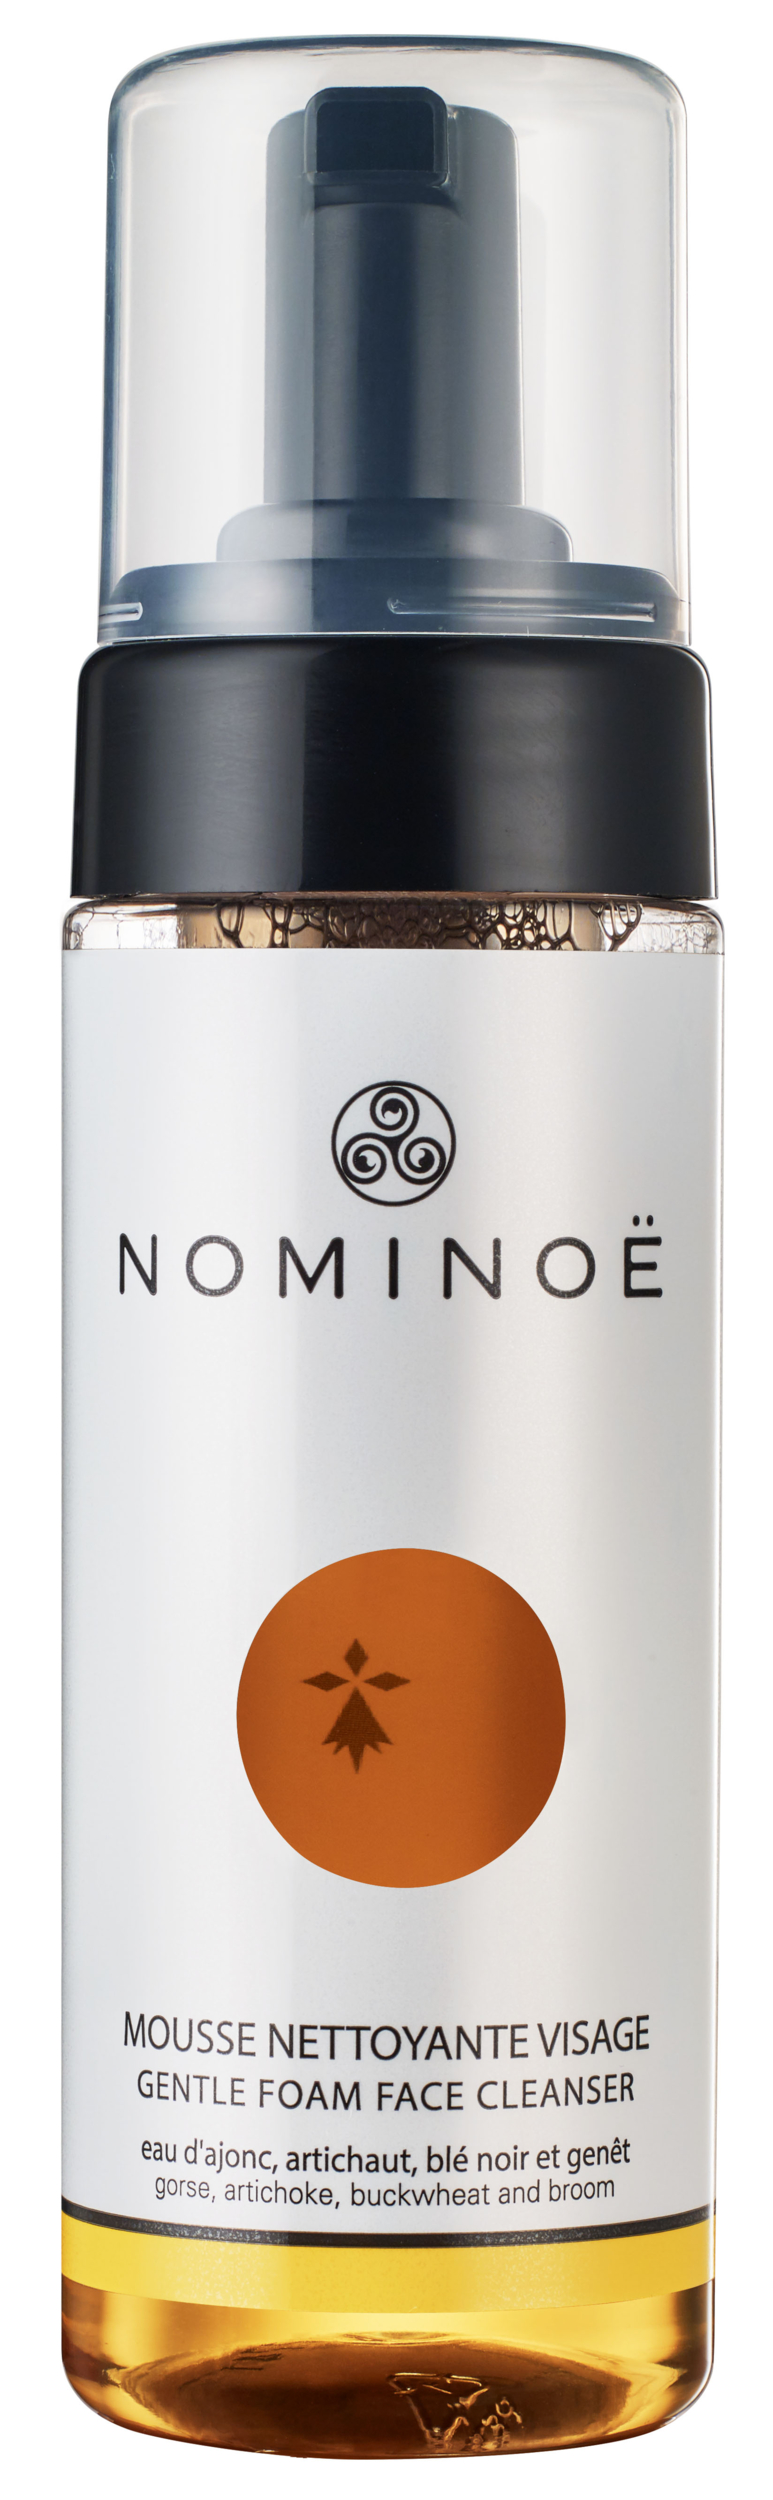 Nominoë - Mousse Nettoyante 150 ml